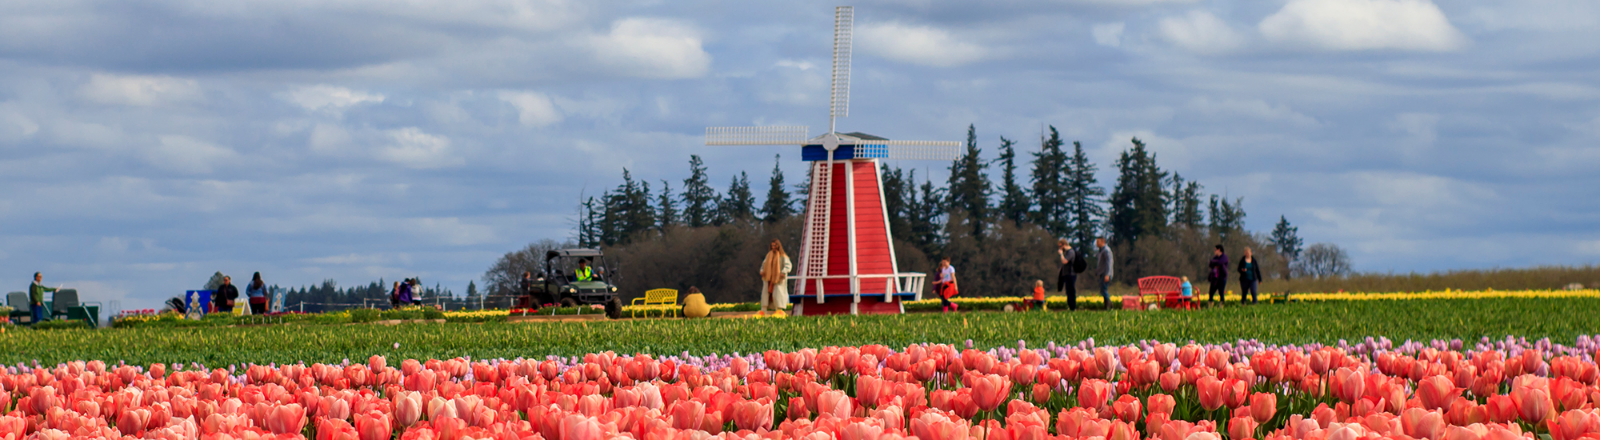 Field of pink and red variegated tulips and windmill in distance at Wooden Shoe Tulip Festival in Oregon's Mt. Hood Territory